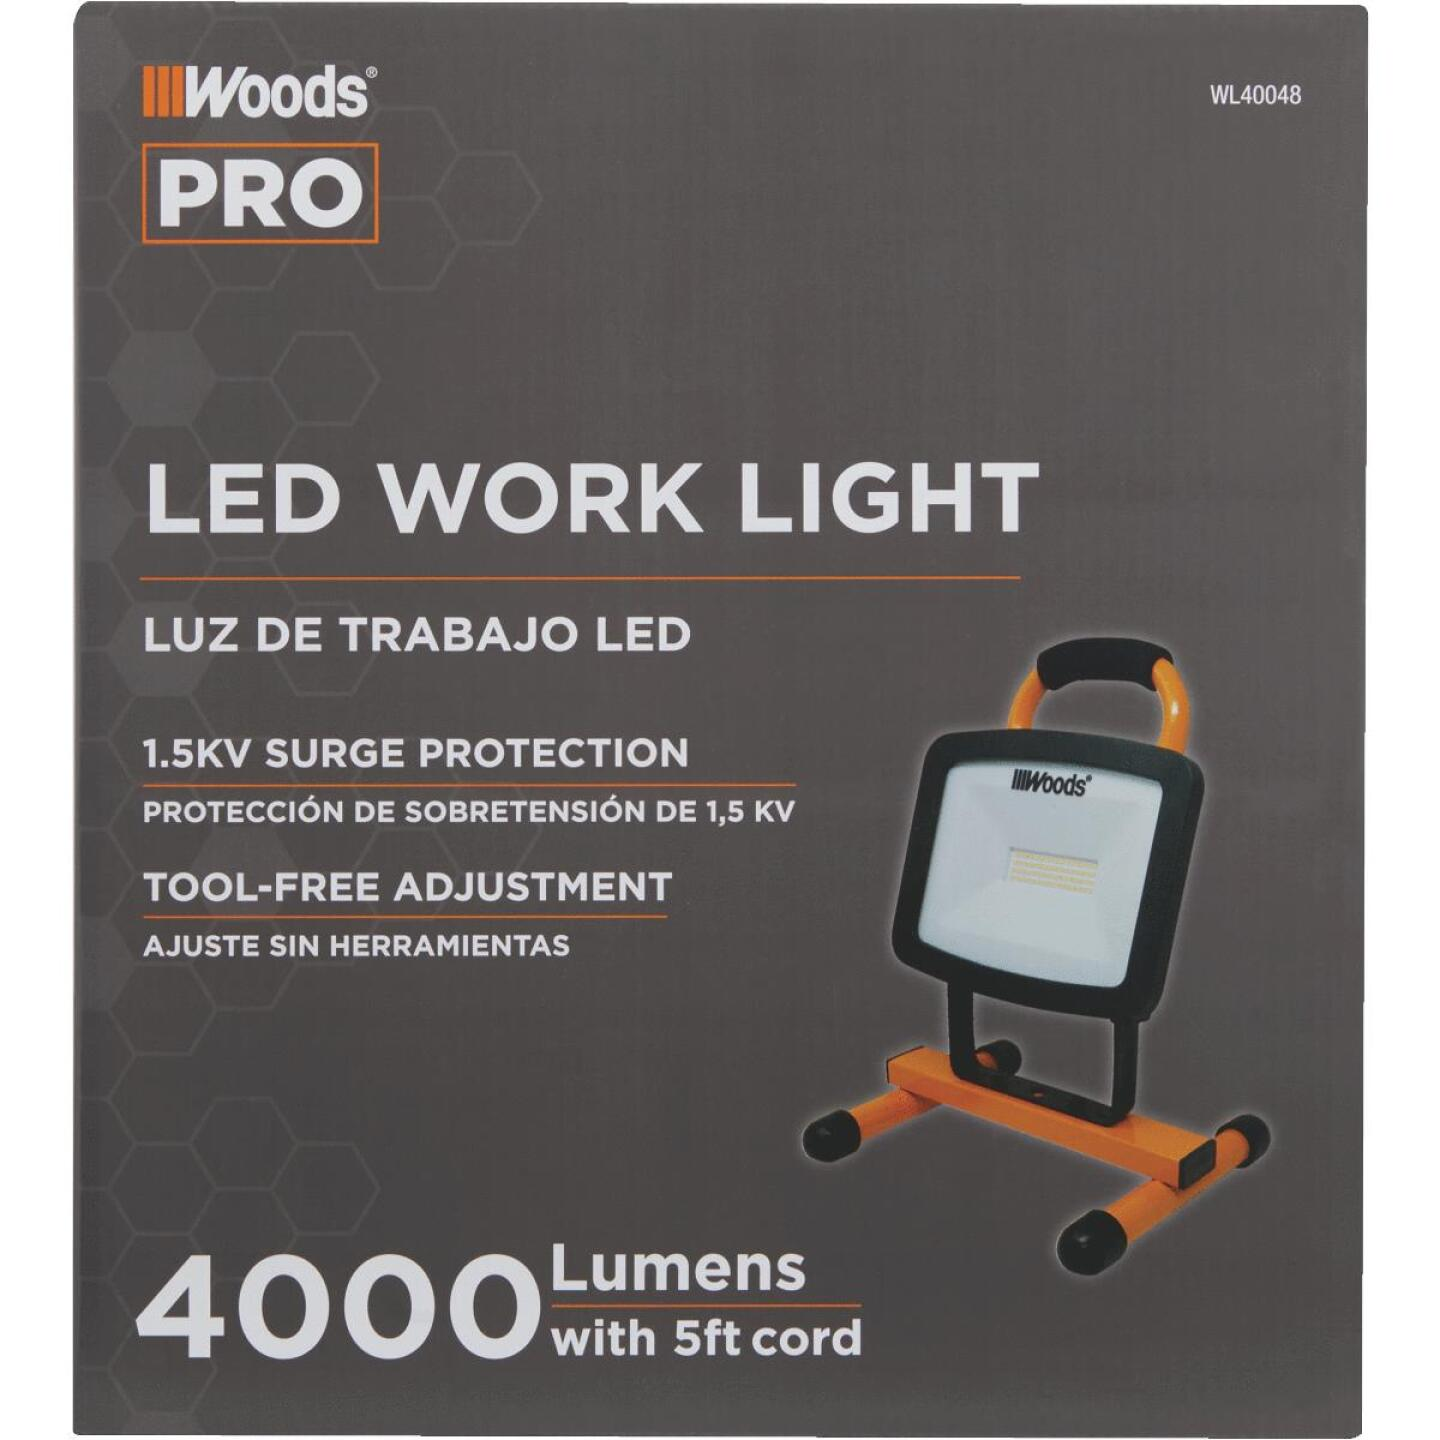 Woods 4400 Lm. LED H-Stand Portable Work Light Image 2